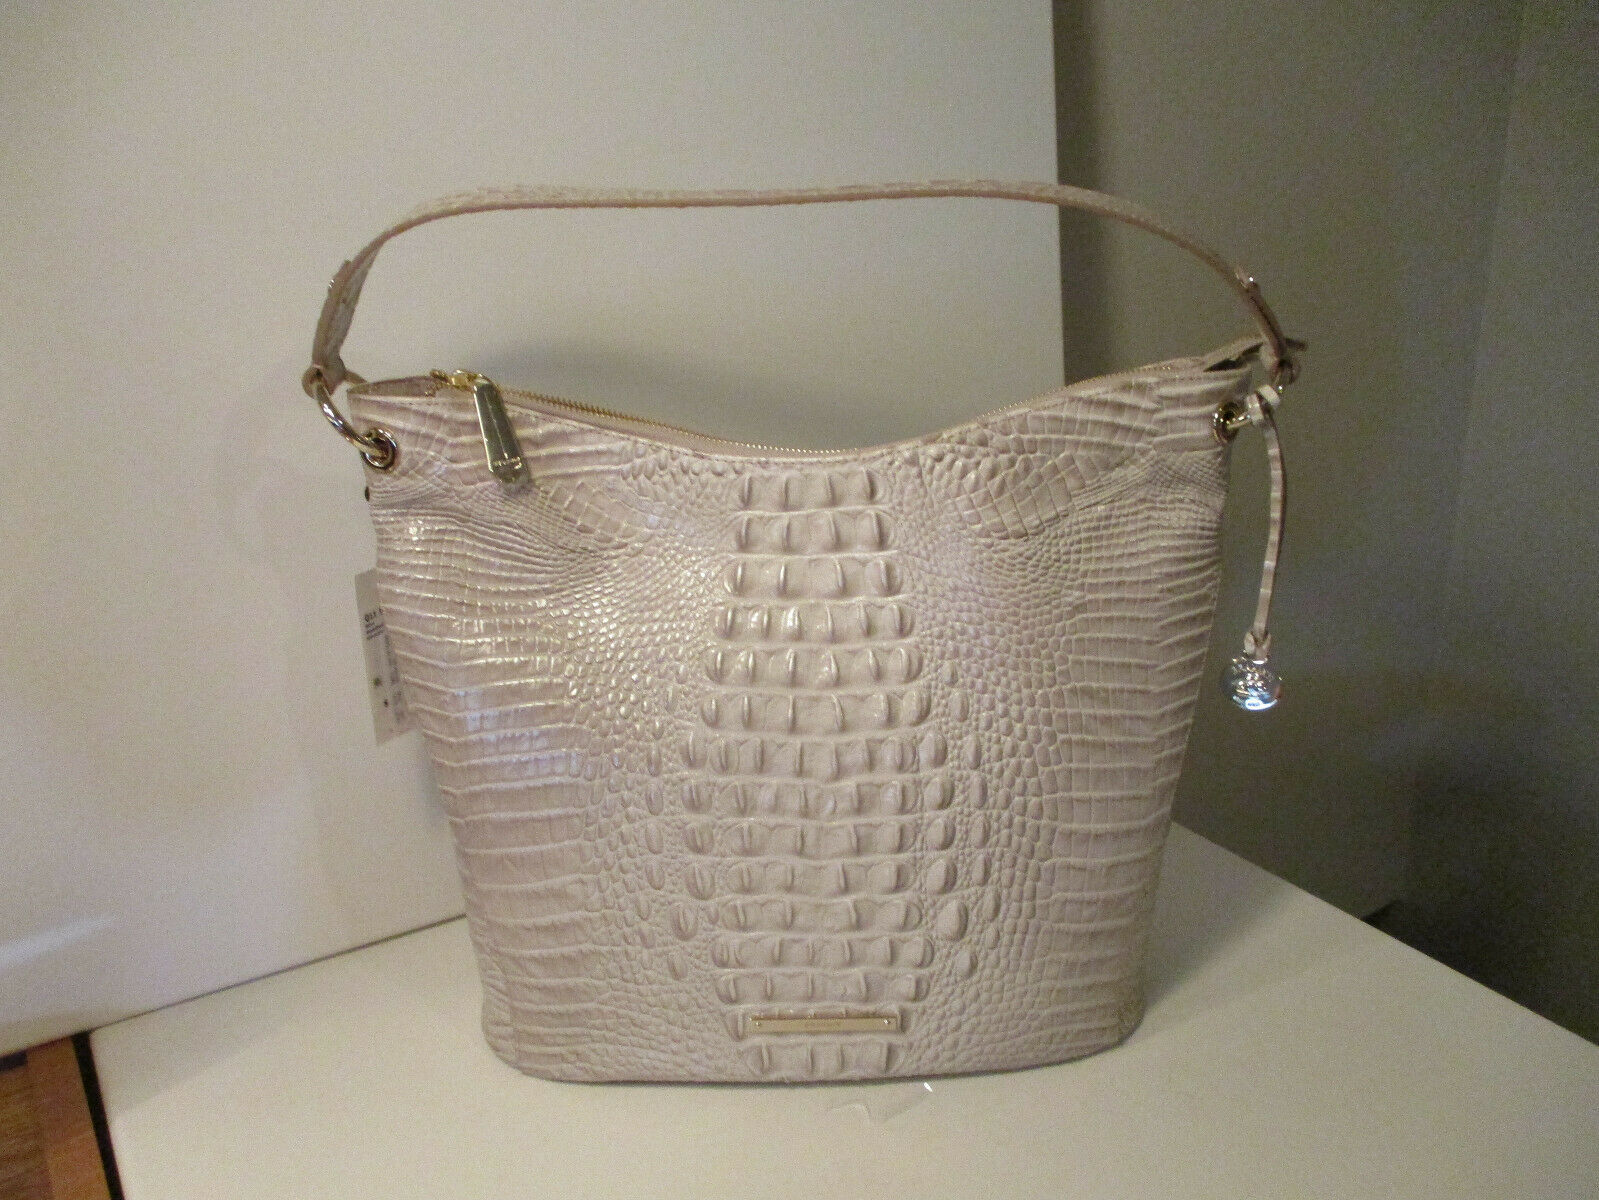 Primary image for Authentic Brahmin Sevi Seashell Melbourne Shoulder Bag Embossed Leather NWT